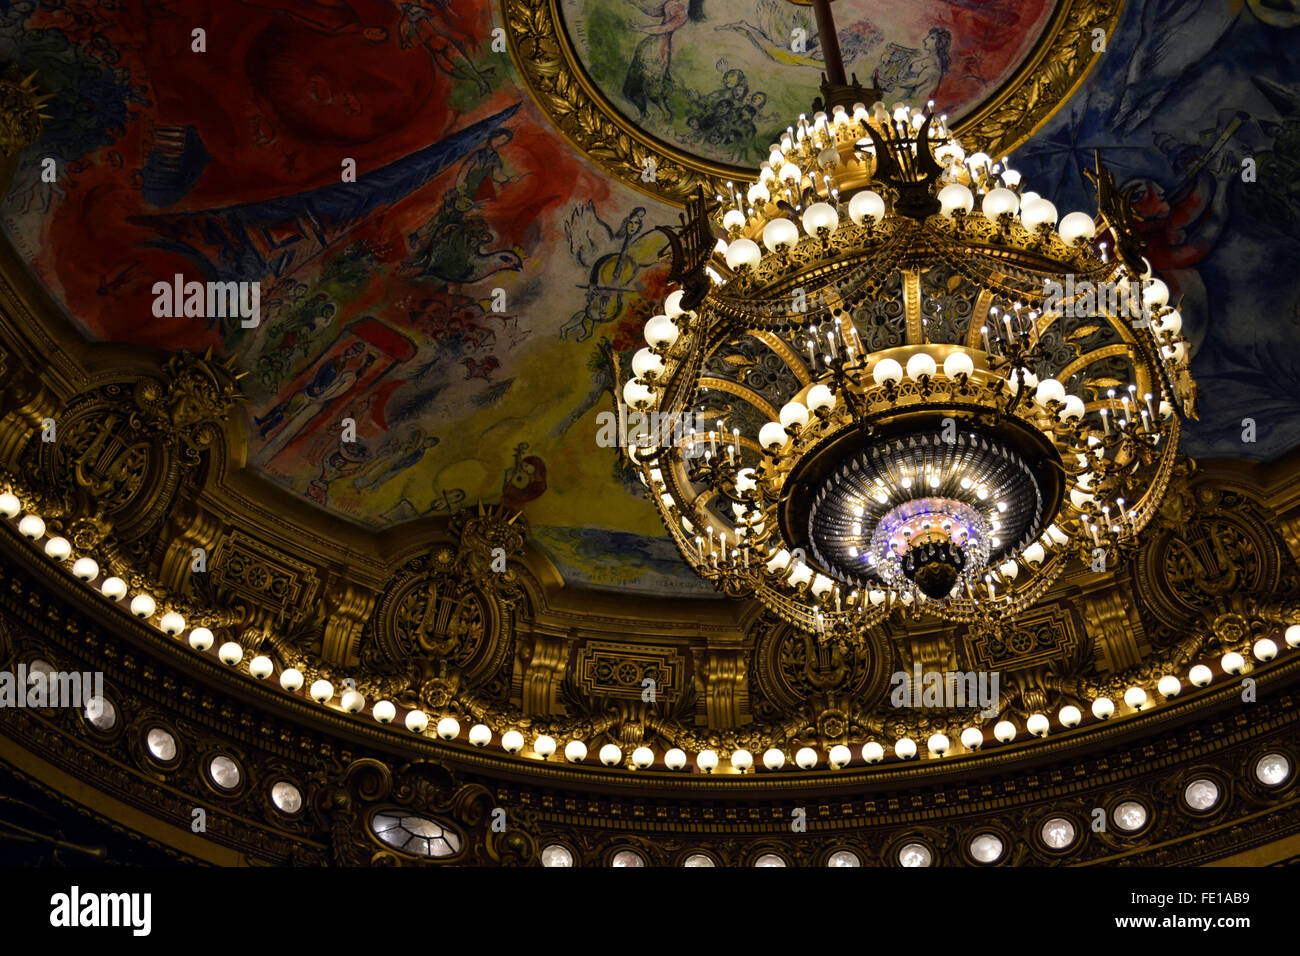 Palais garnier chandelier stock photos palais garnier chandelier auditorium ceiling at the palais garnier stock image aloadofball Images